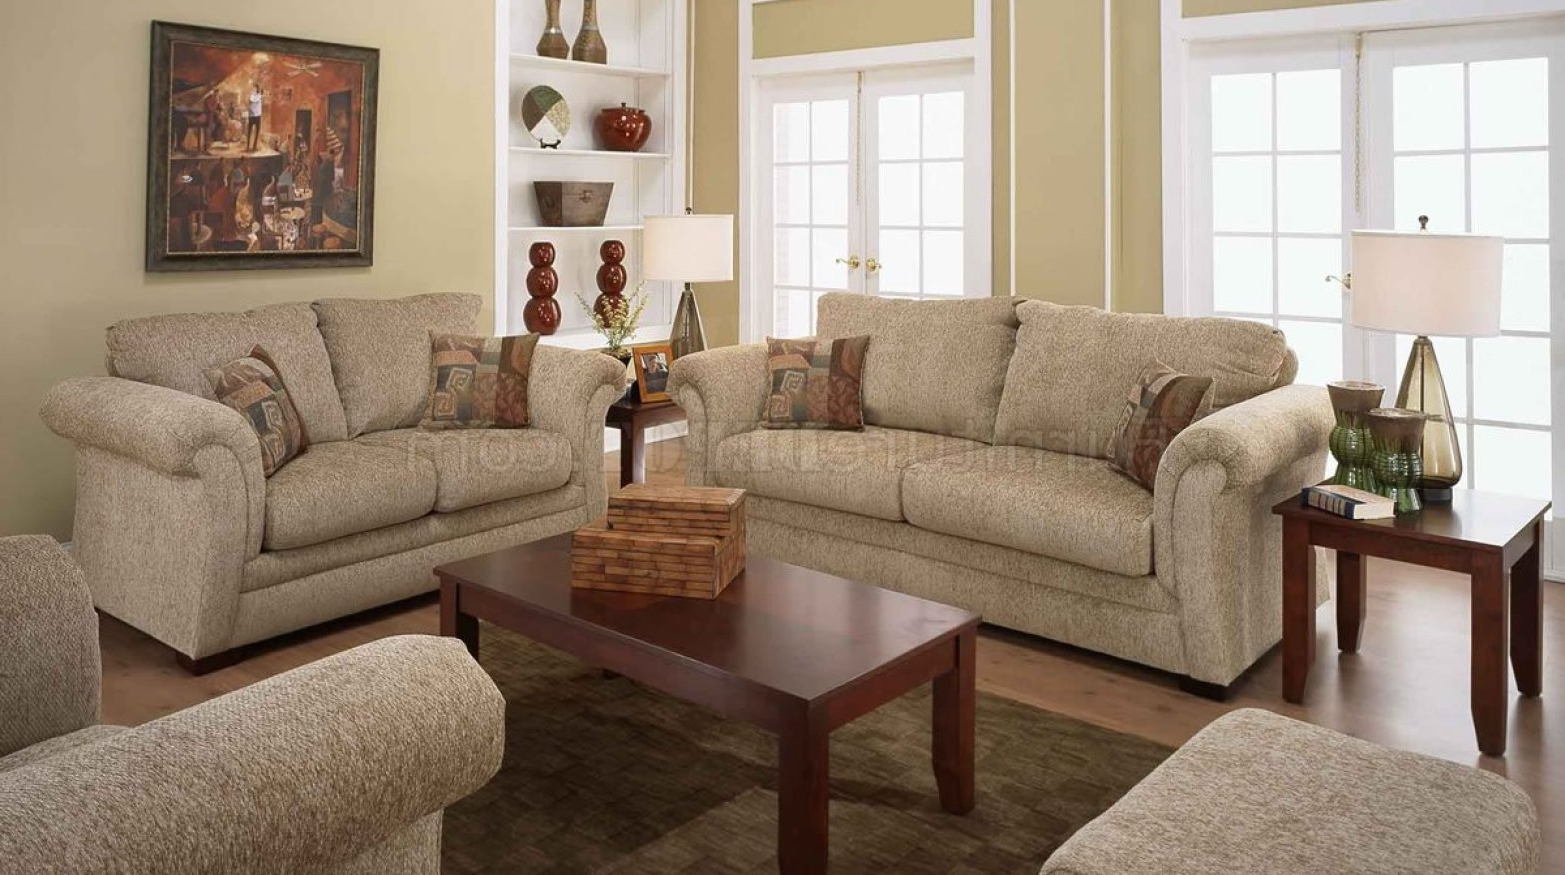 Casual Sofas And Chairs For Newest Chairs : Reclining Sectional Sofas Amazing Casual Sofas And Chairs (View 3 of 20)